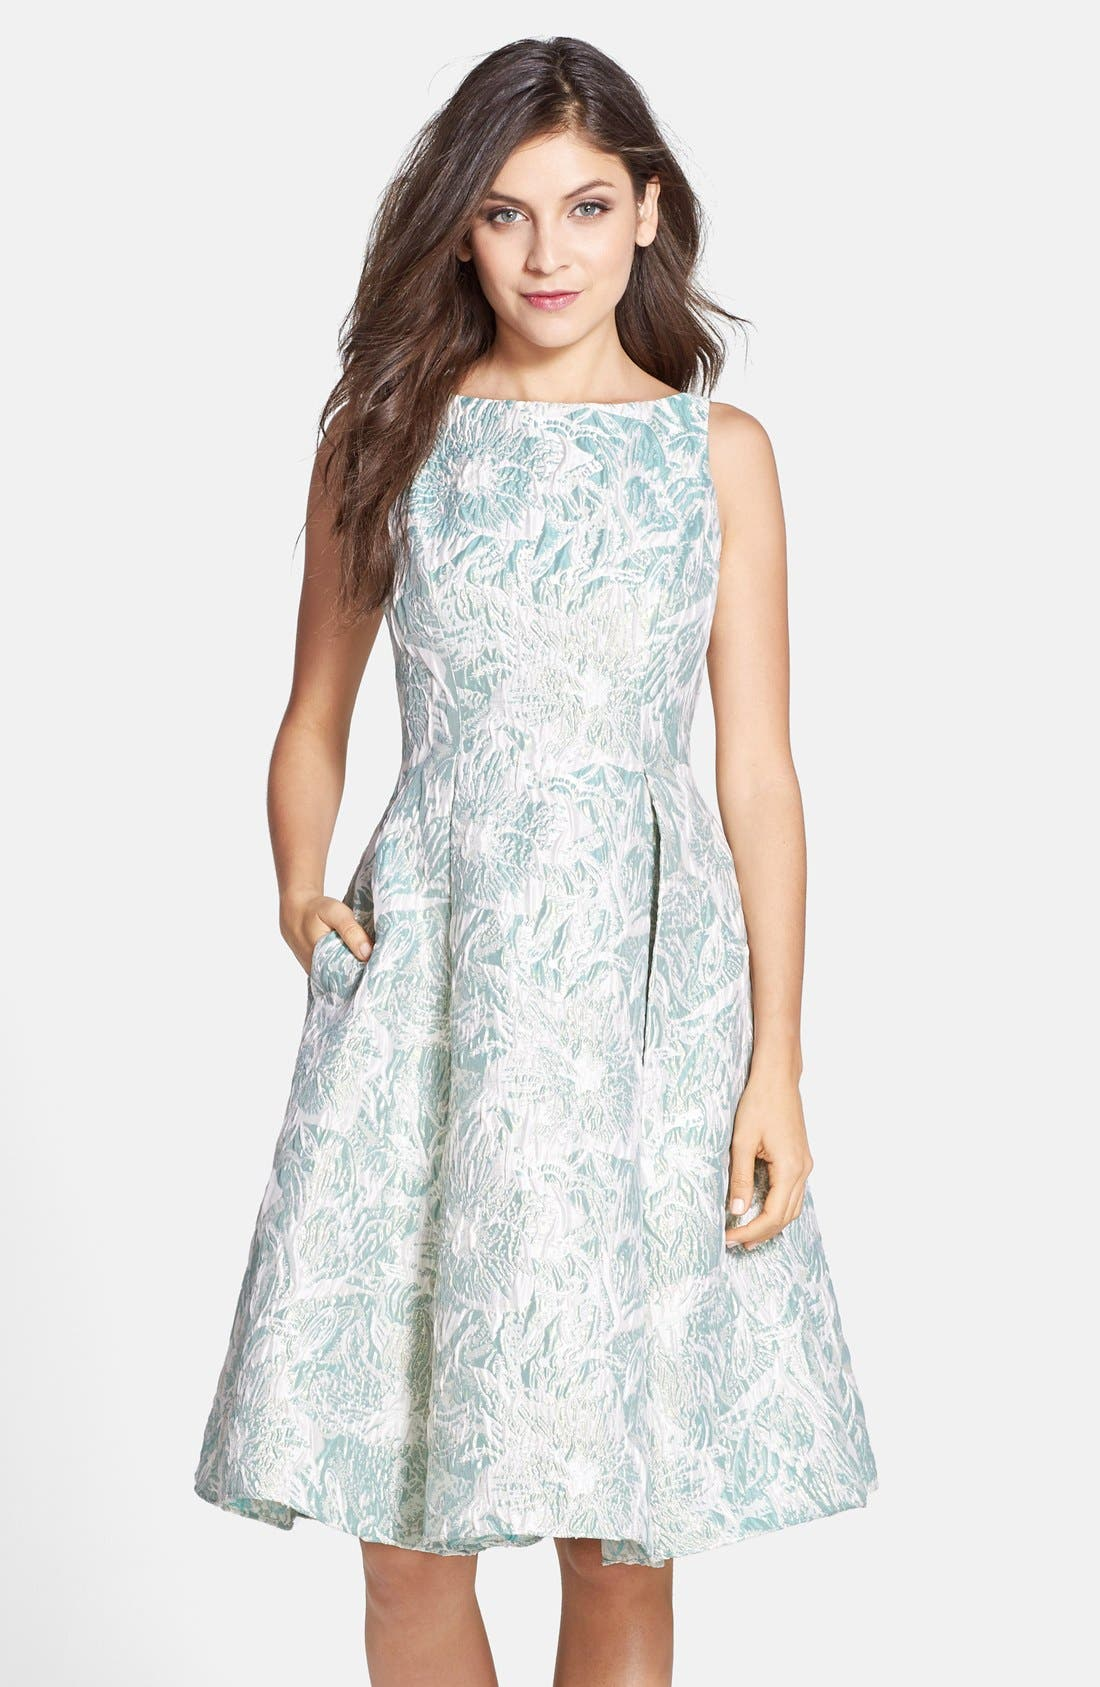 Alternate Image 1 Selected - Adrianna Papell Metallic Floral Jacquard Tea Length Fit & Flare Dress